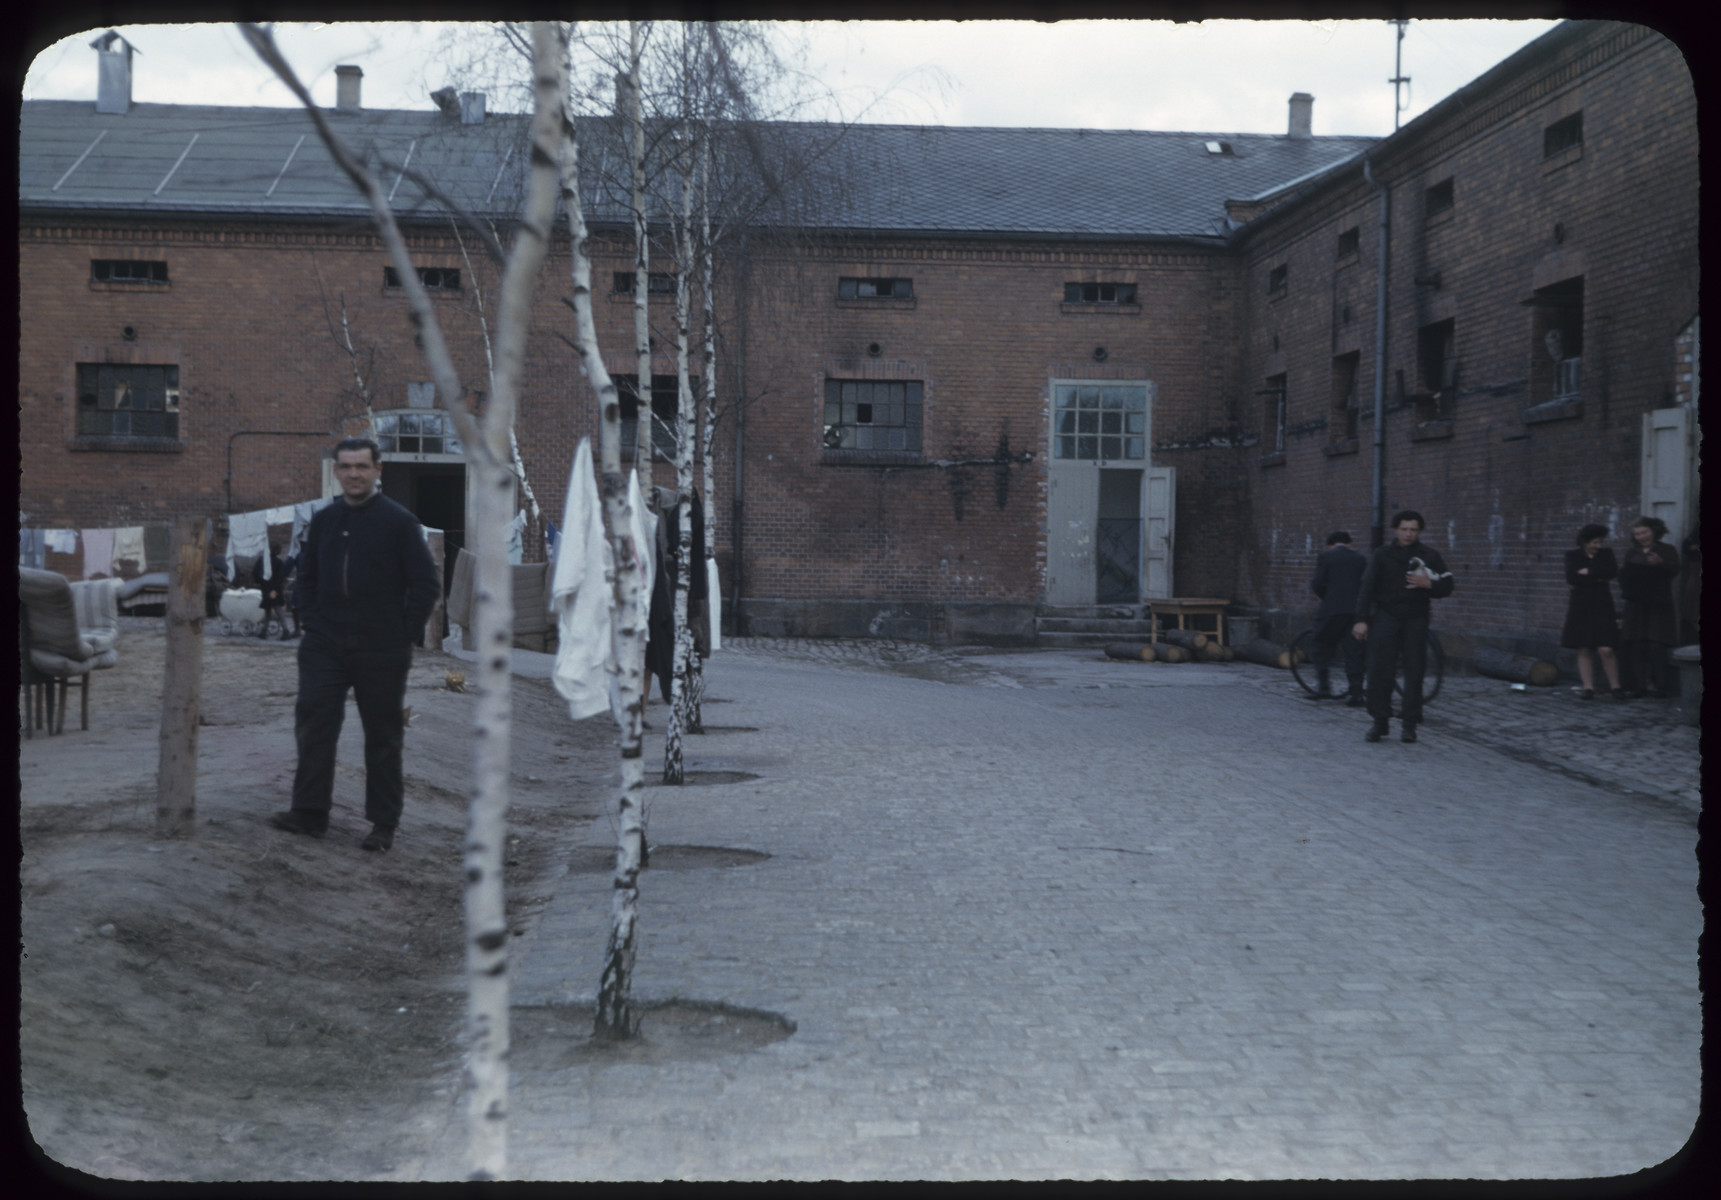 View of displaced persons in a courtyard in the Bamberg displaced persons camp in Germany.